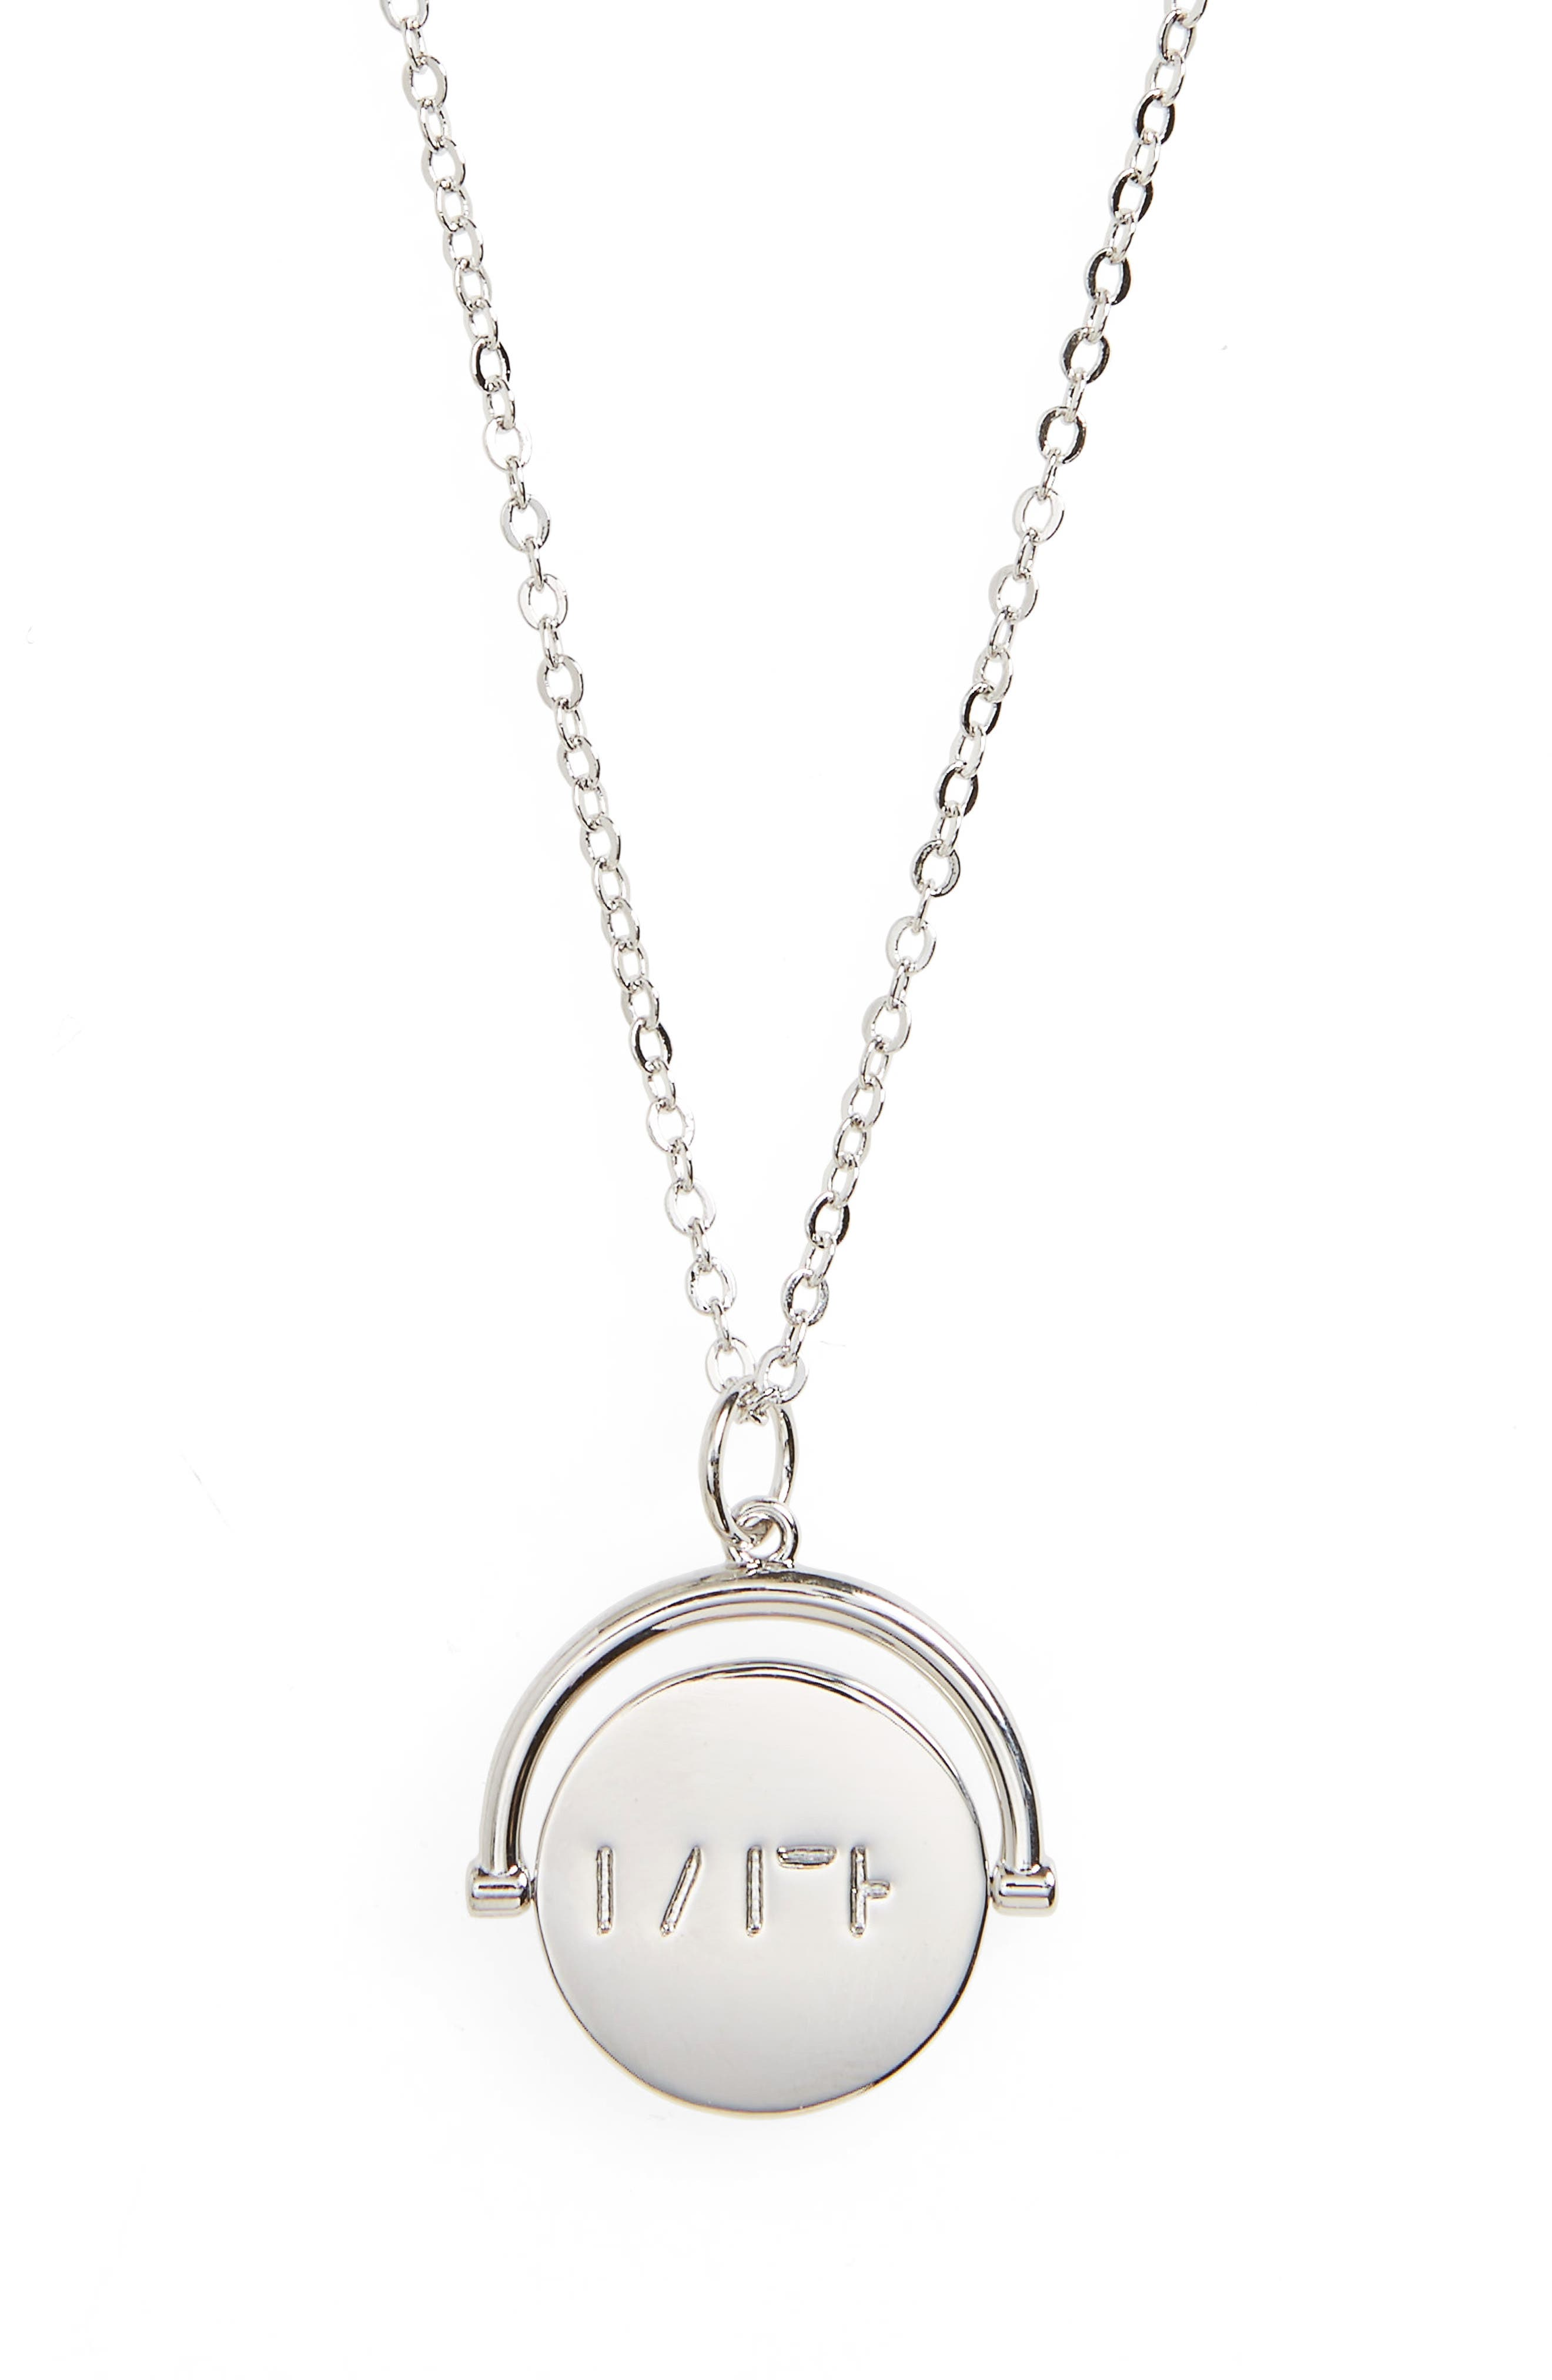 Faith Love Code Charm Necklace,                             Main thumbnail 1, color,                             Faith/ Silver